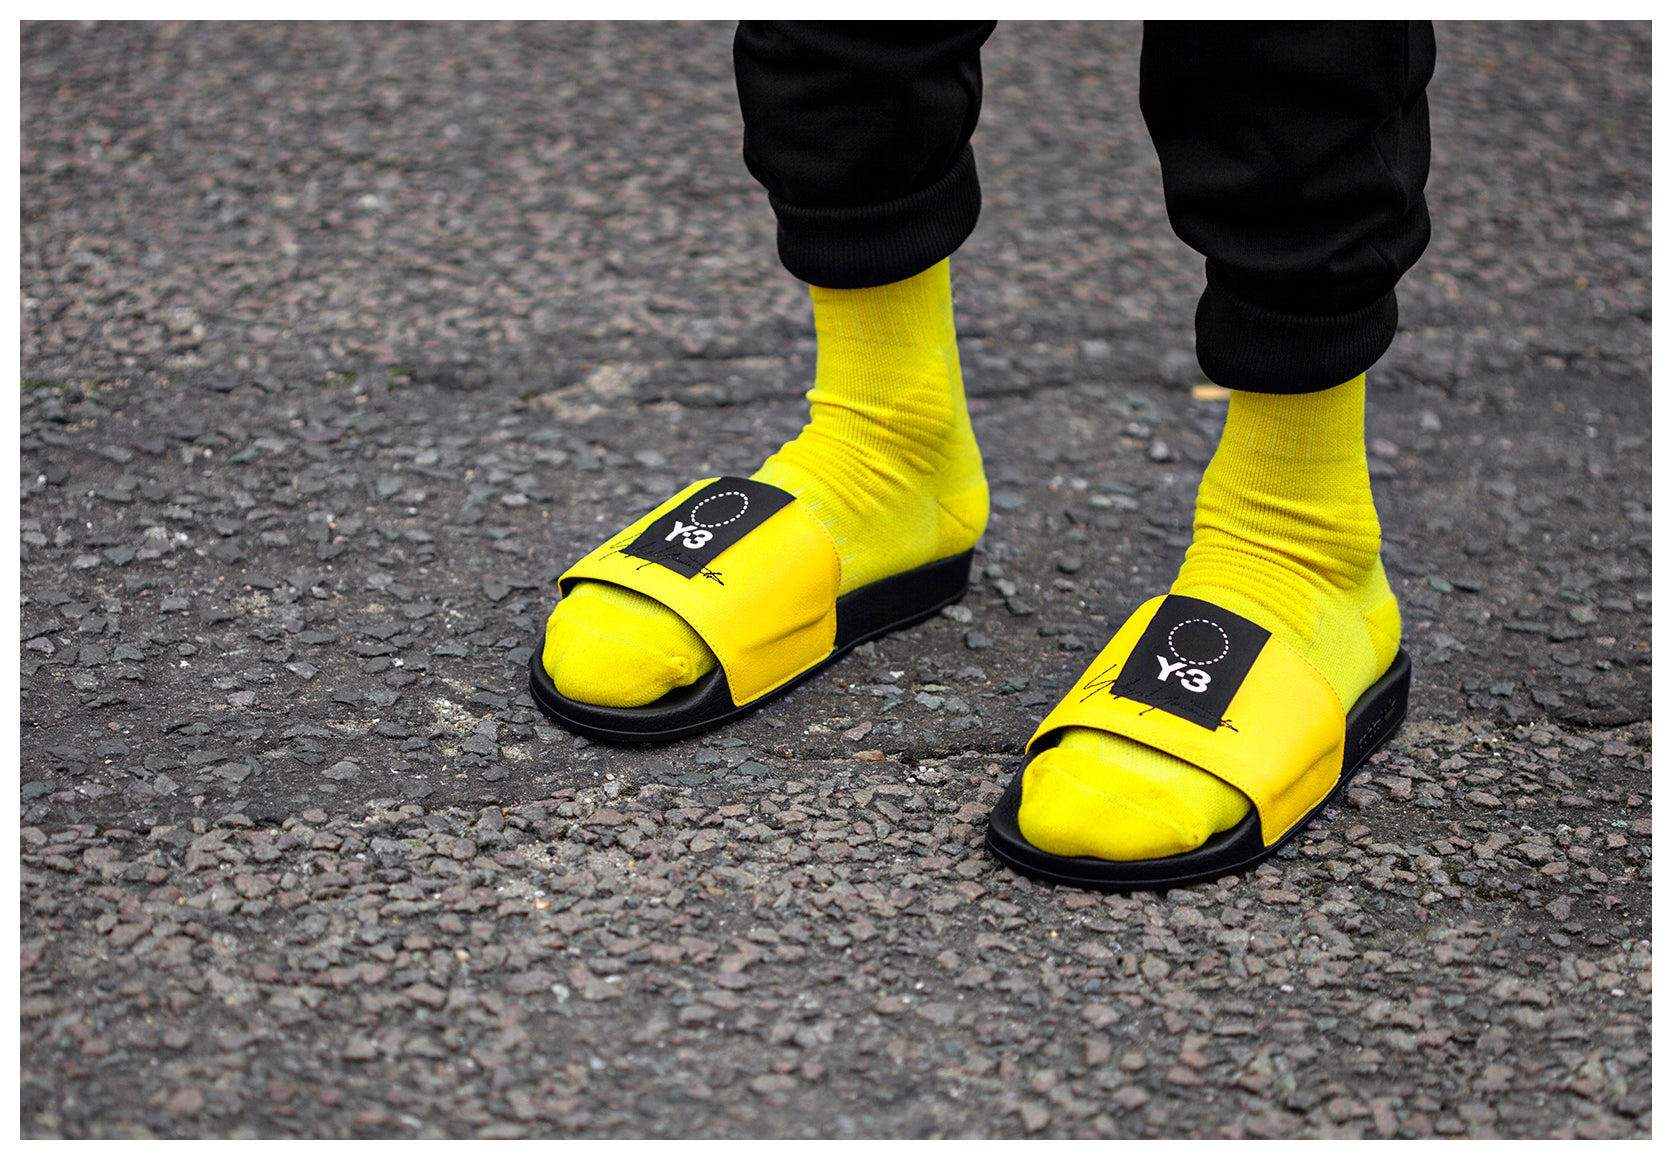 Detailed Shot of model wearing Yellow Y-3 Adilette slides and Yellow Y-3 socks